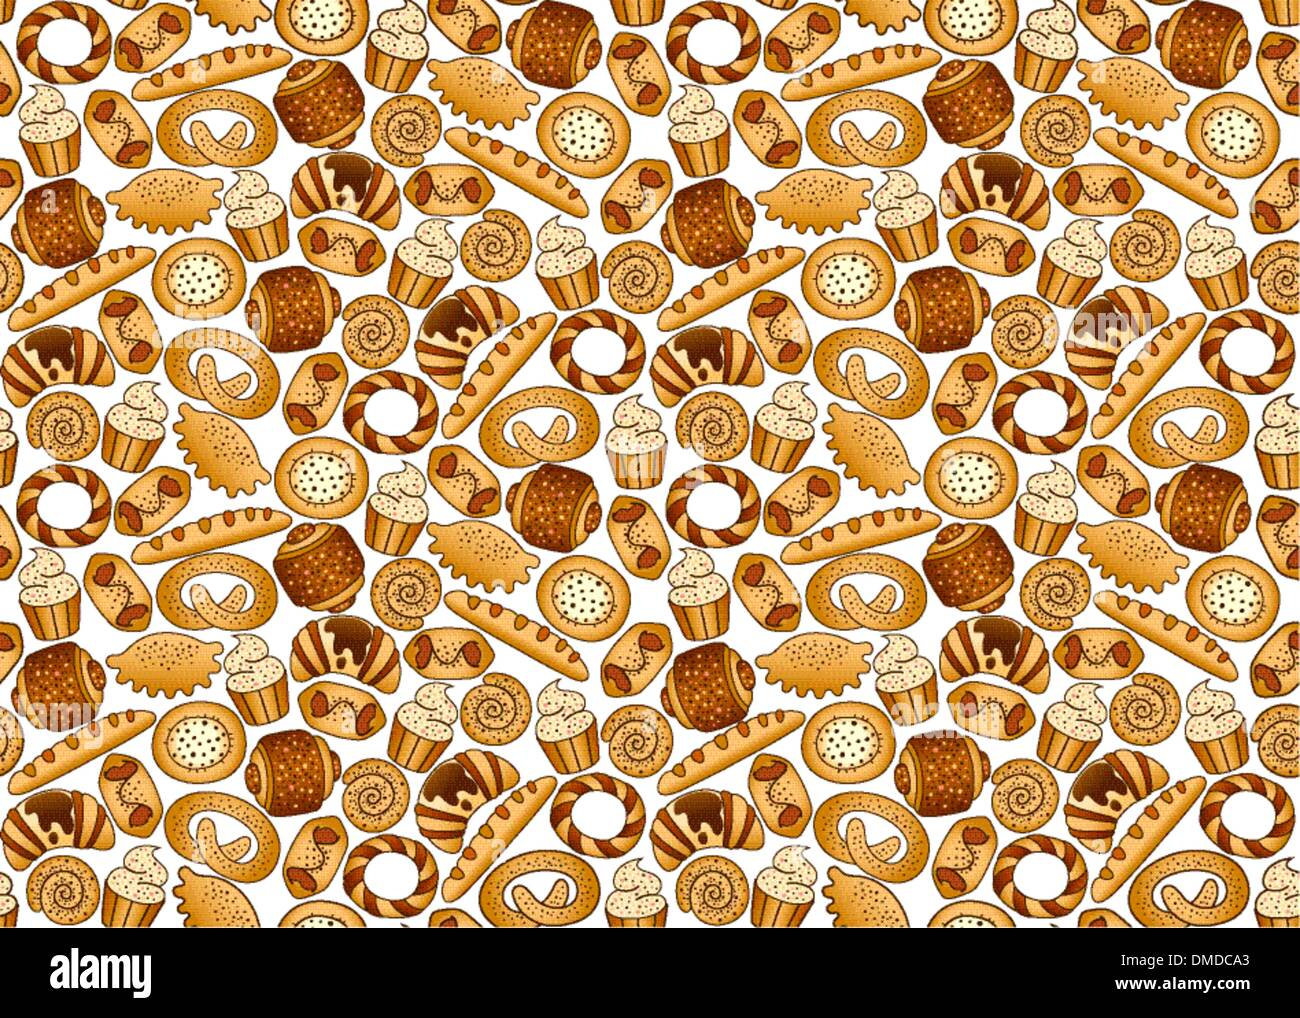 Bakery foodstuffs set on a white background - Stock Vector